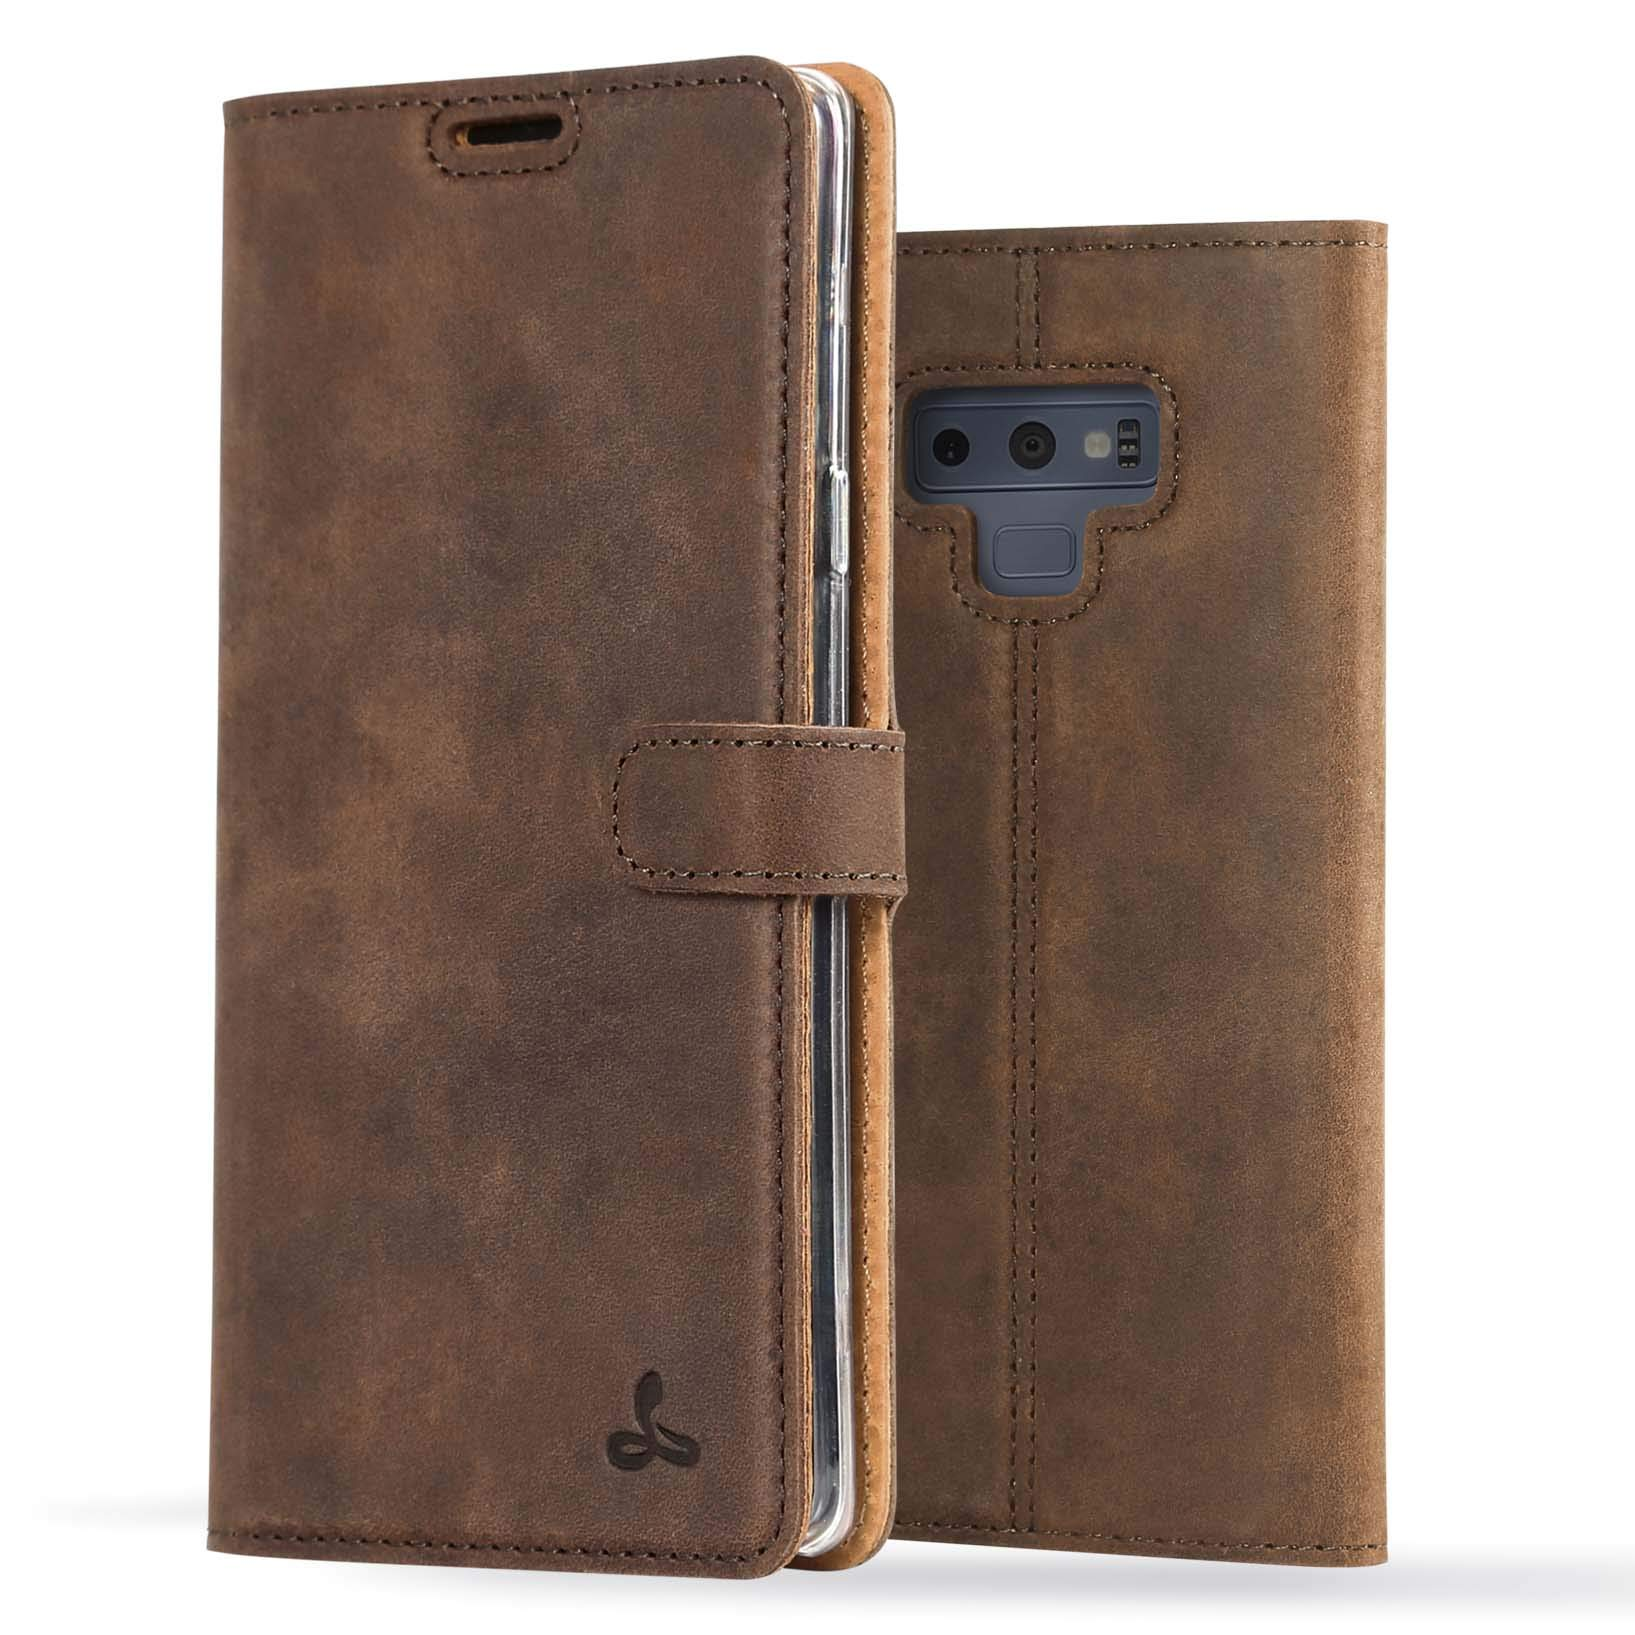 Snakehive Samsung Galaxy Note 9 Case, Luxury Genuine Leather Wallet with Viewing Stand and Card Slots, Flip Cover Gift Boxed and Handmade in Europe for Samsung Galaxy Note 9 - Brown